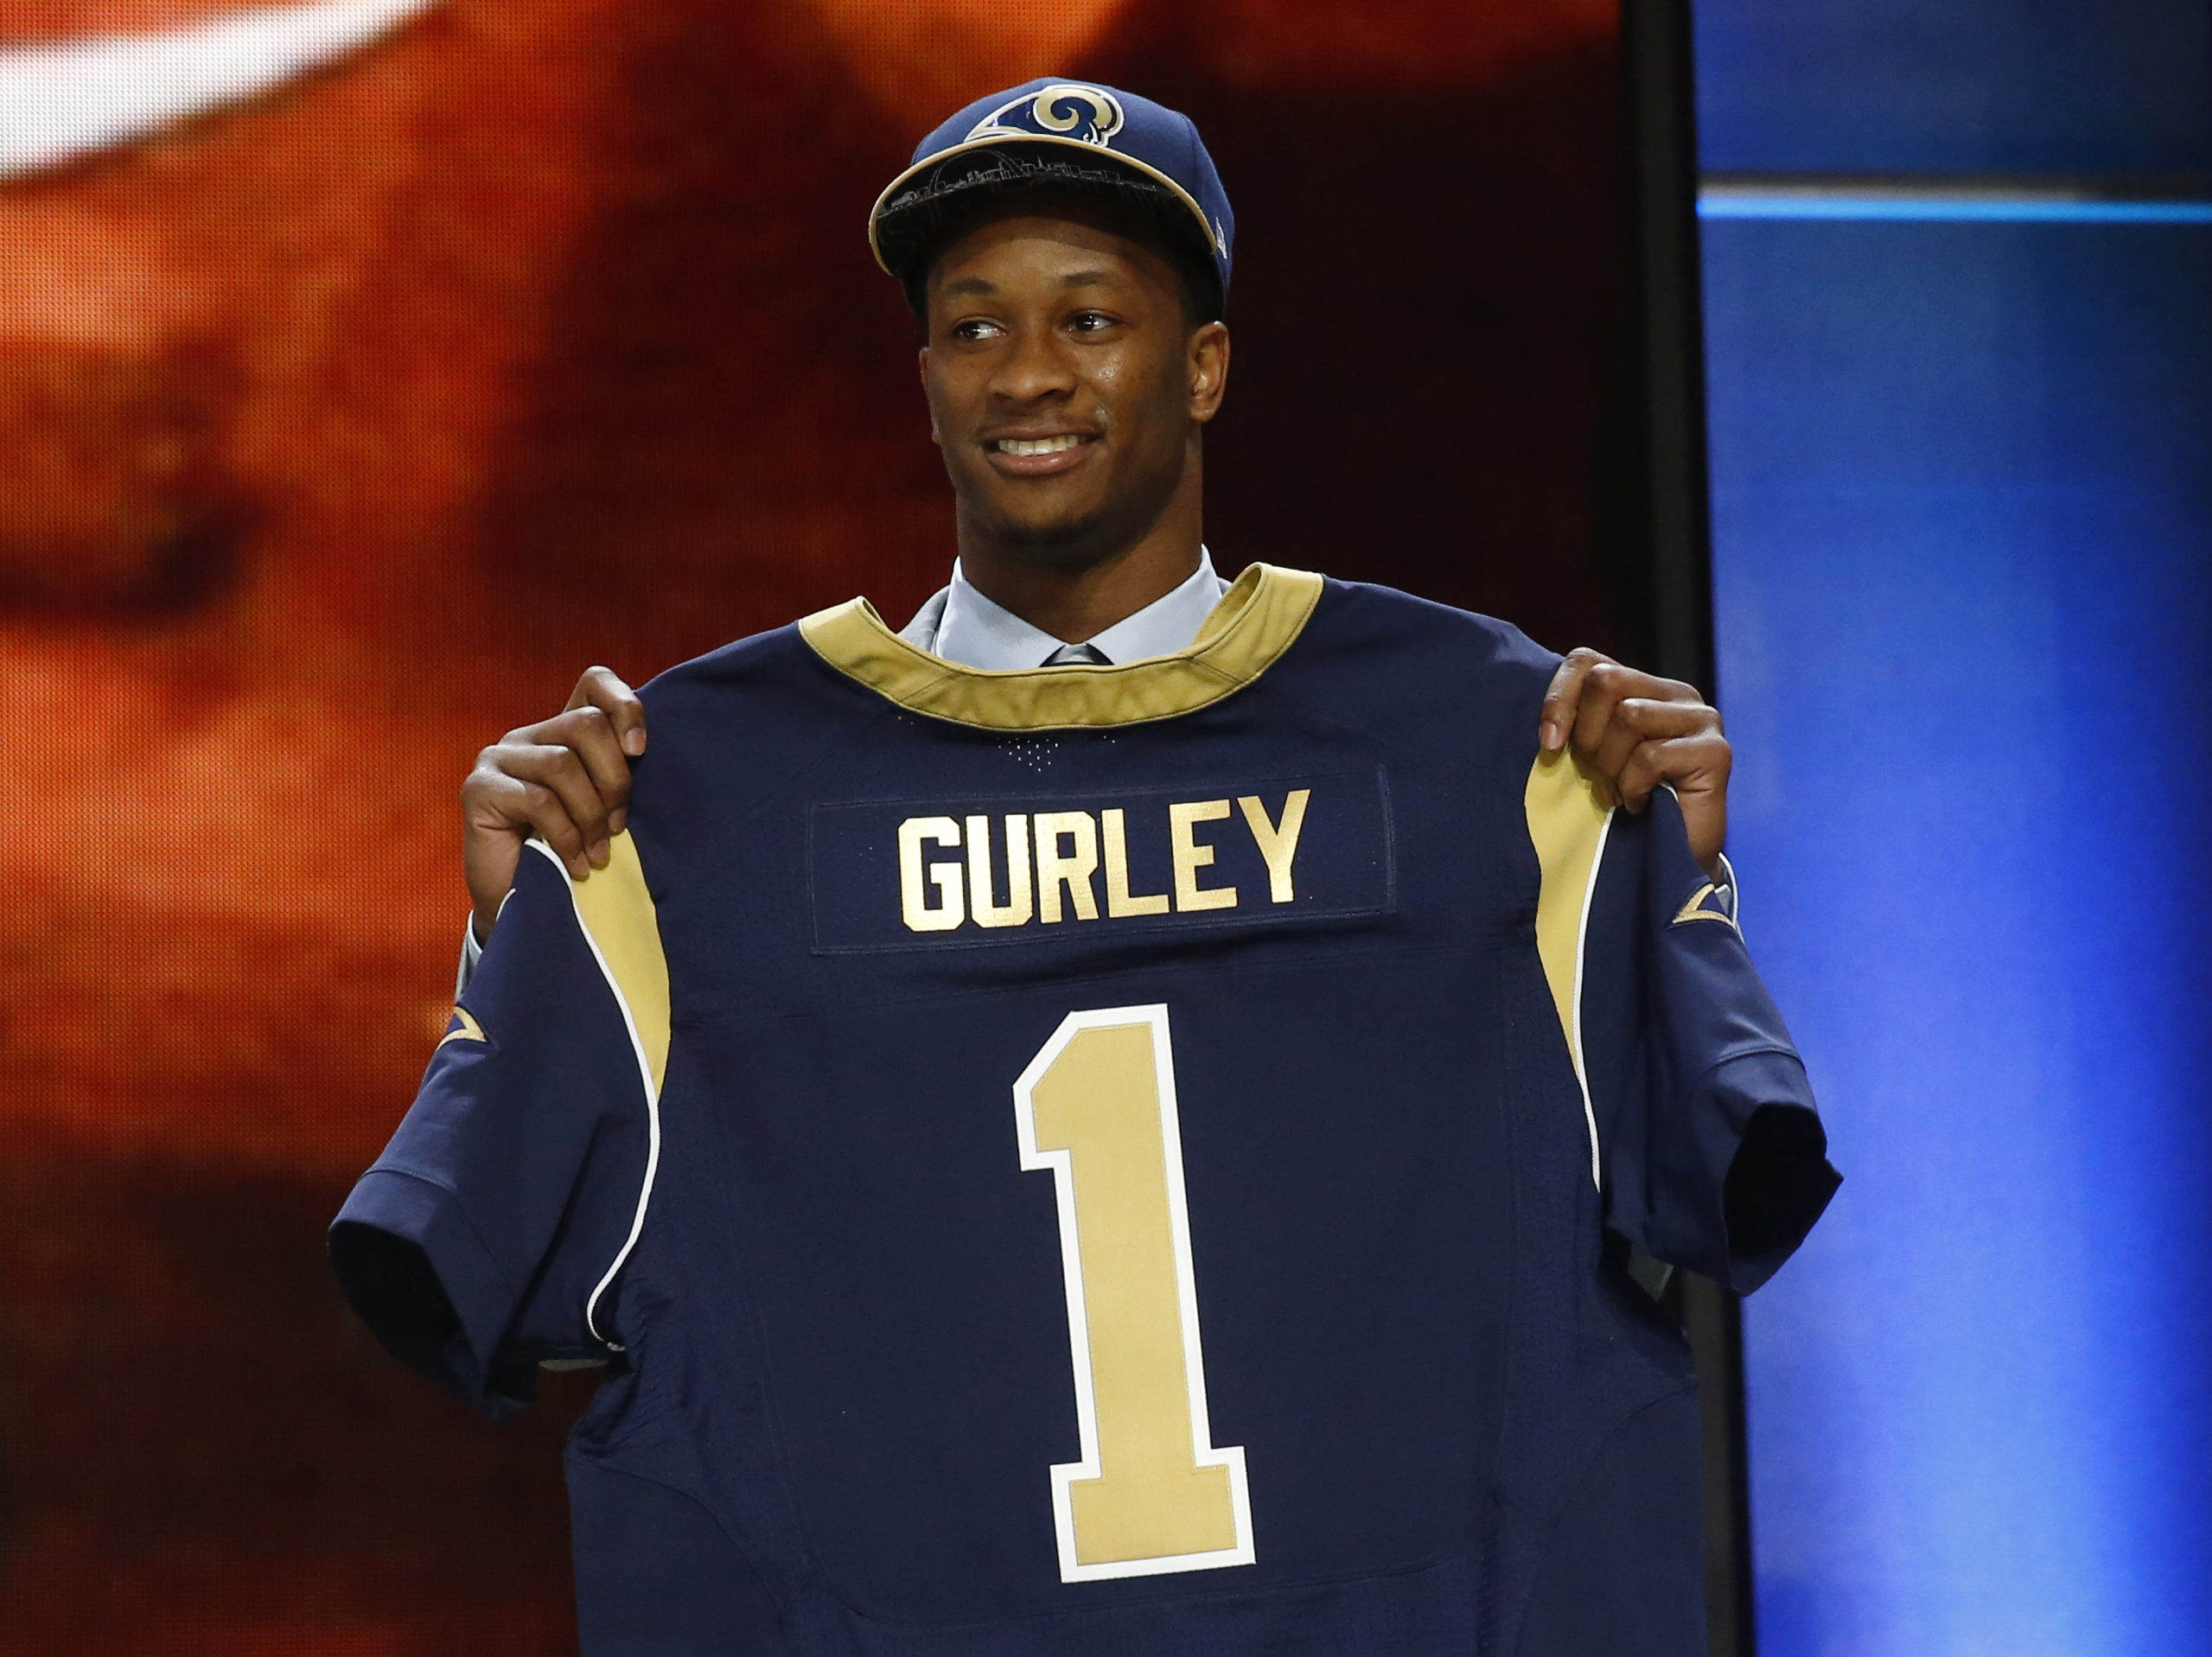 FILE - In this Thursday, April 30, 2015 file photo, Georgia running back Todd Gurley poses for photos after being selected by the St. Louis Rams as the 10th pick in the first round of the 2015 NFL Draft in Chicago. Georgia Gov. Nathan Deal has signed into